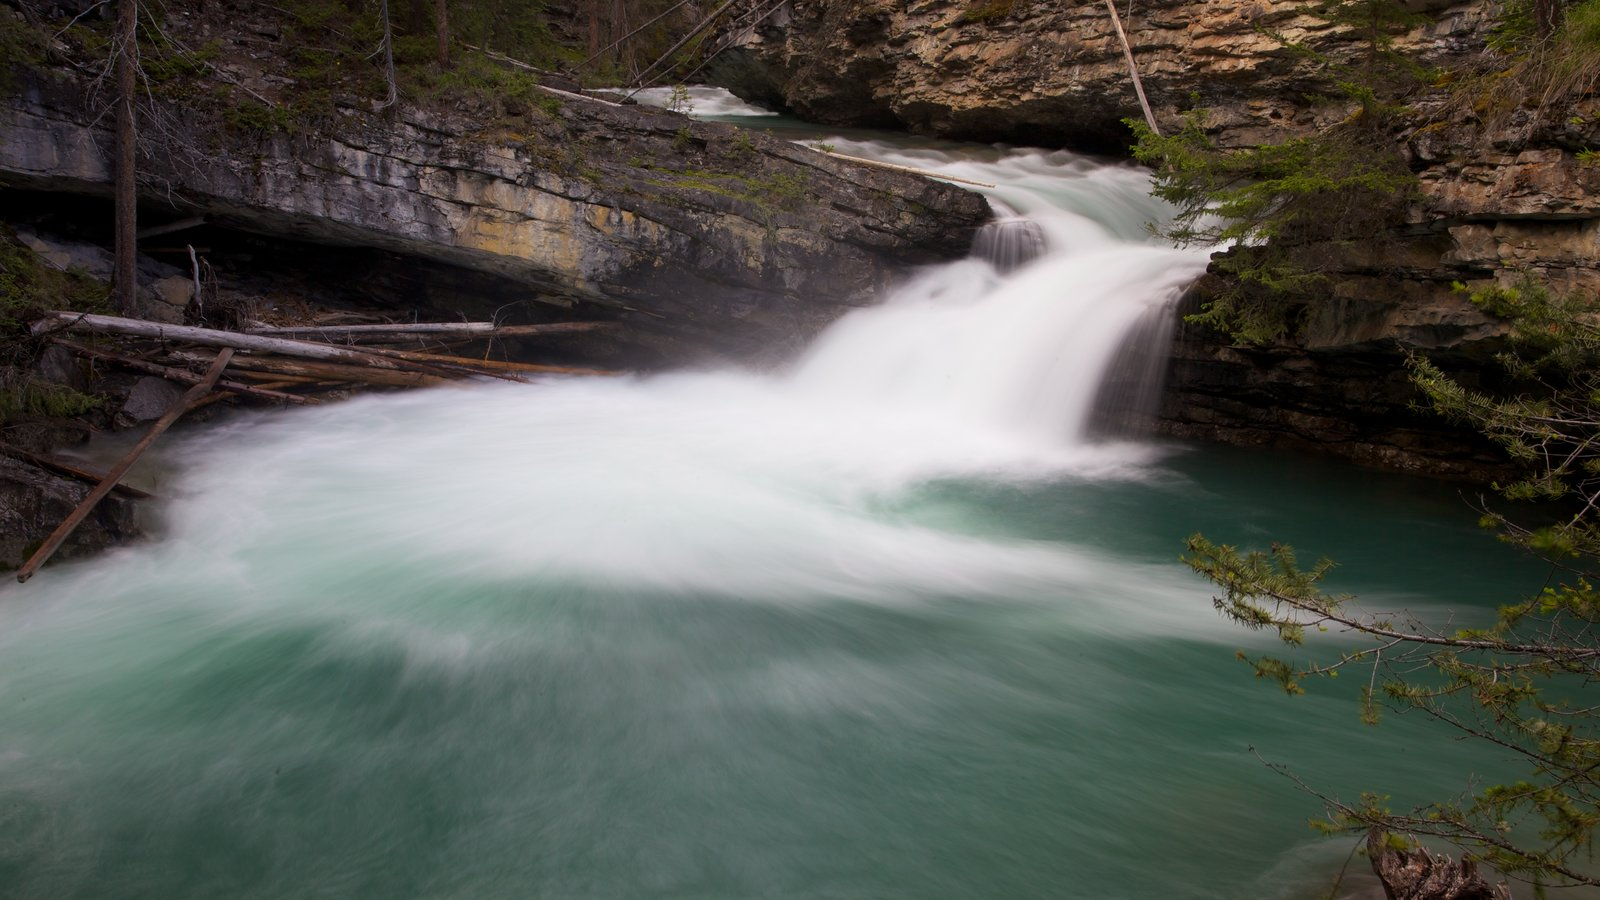 Johnston Canyon featuring landscape views, a waterfall and a gorge or canyon